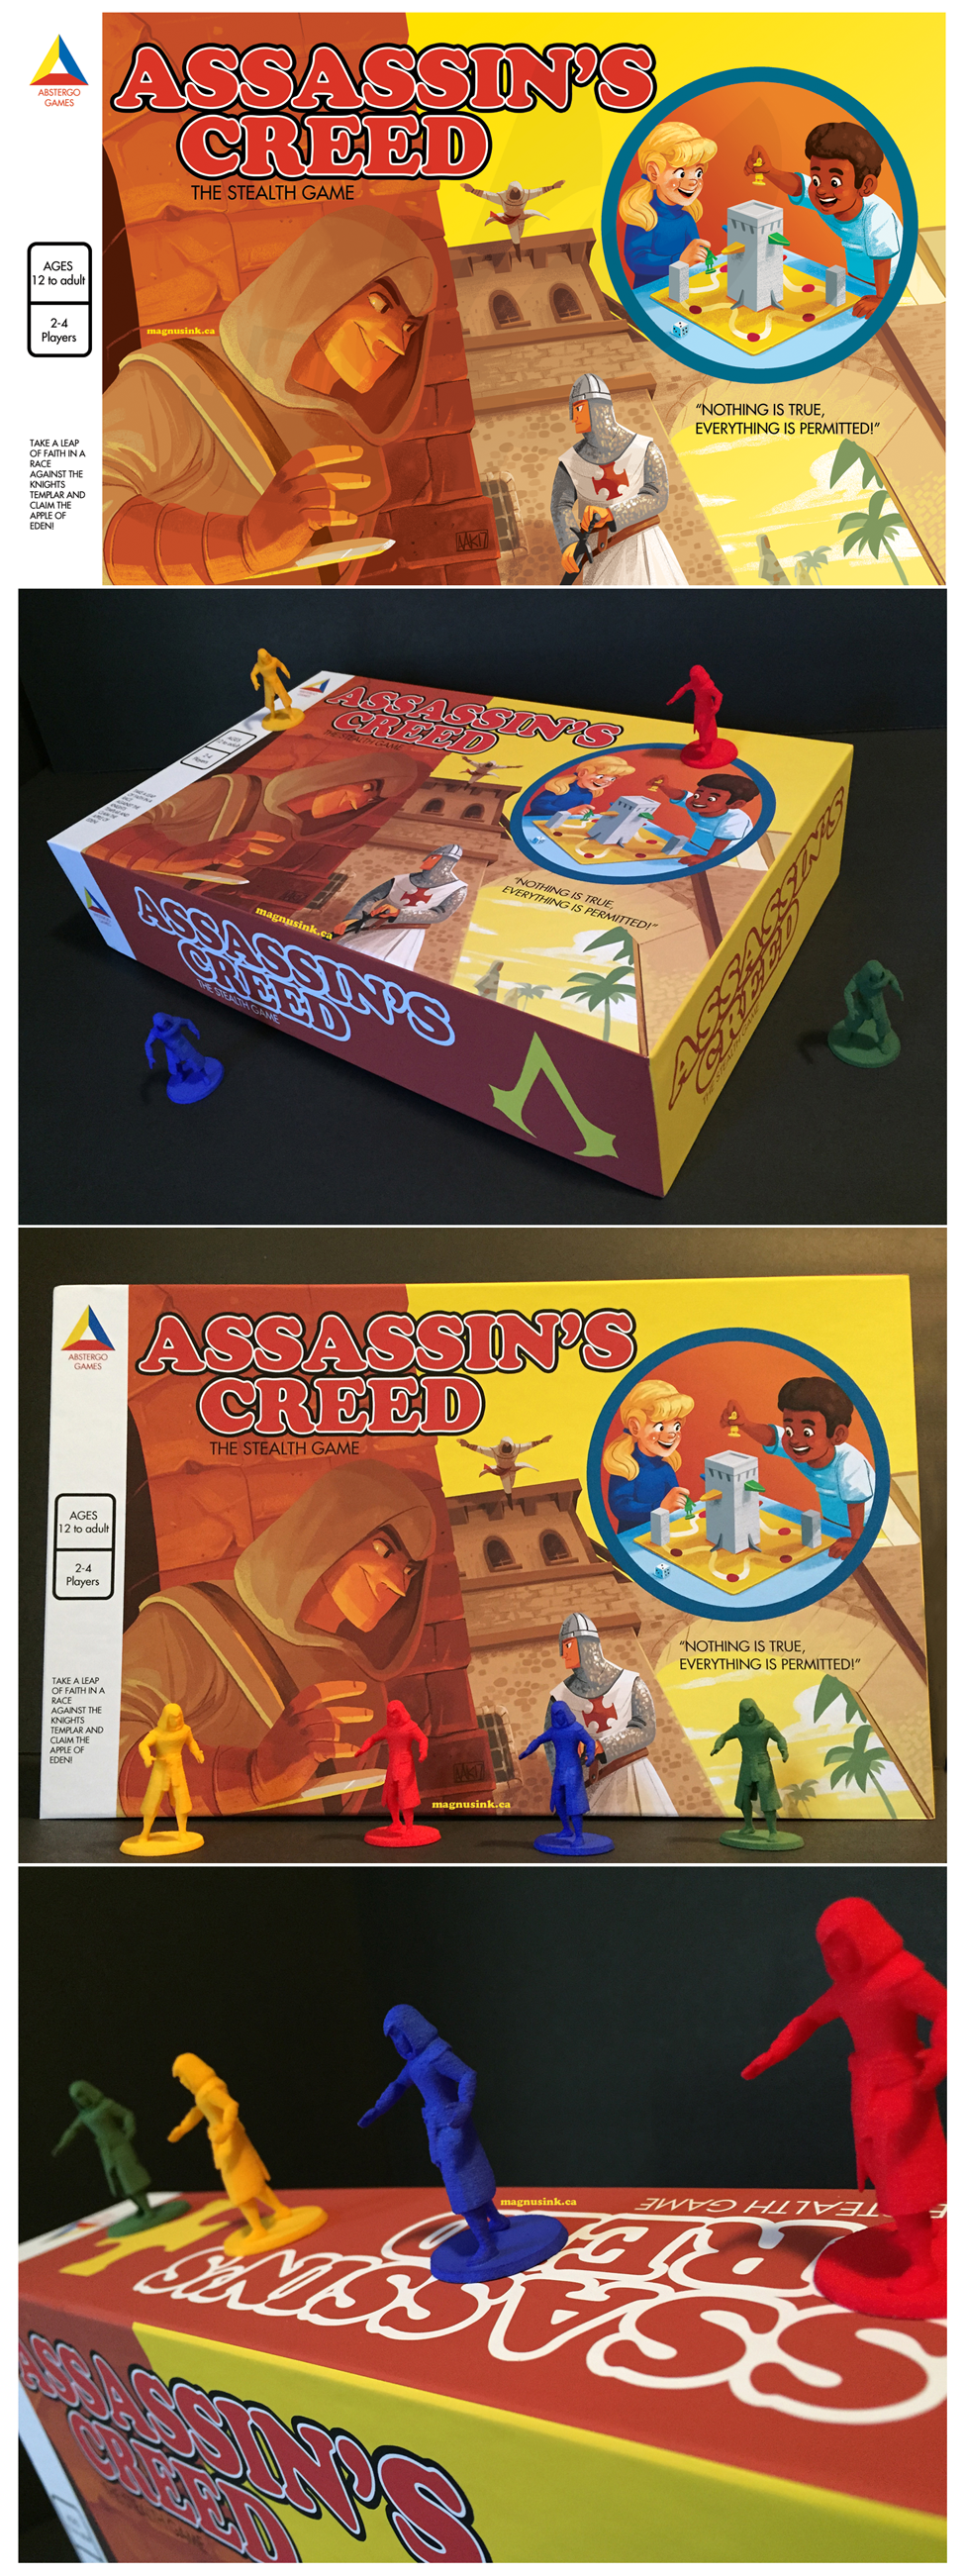 Most recent image: Assassin's Creed mock boardgame